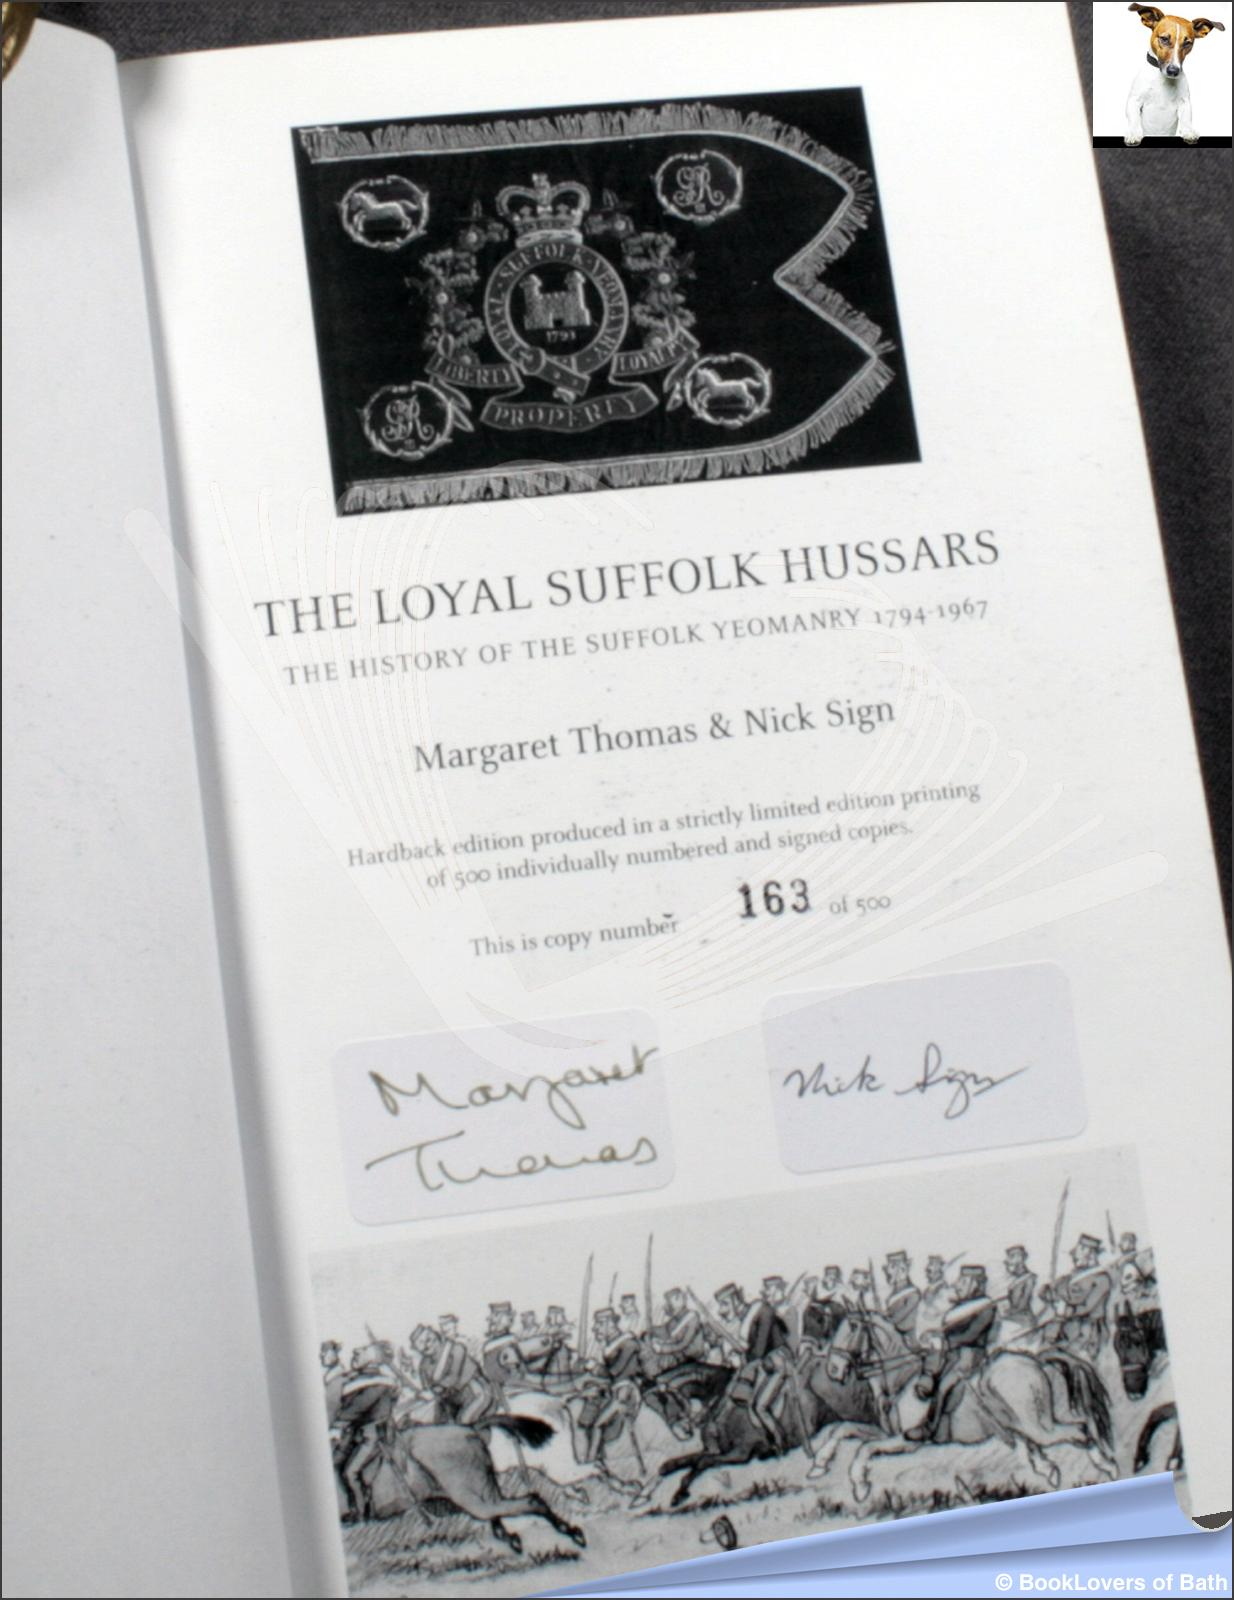 The Loyal Suffolk Hussars: The History of the Suffolk Yeomanry 17